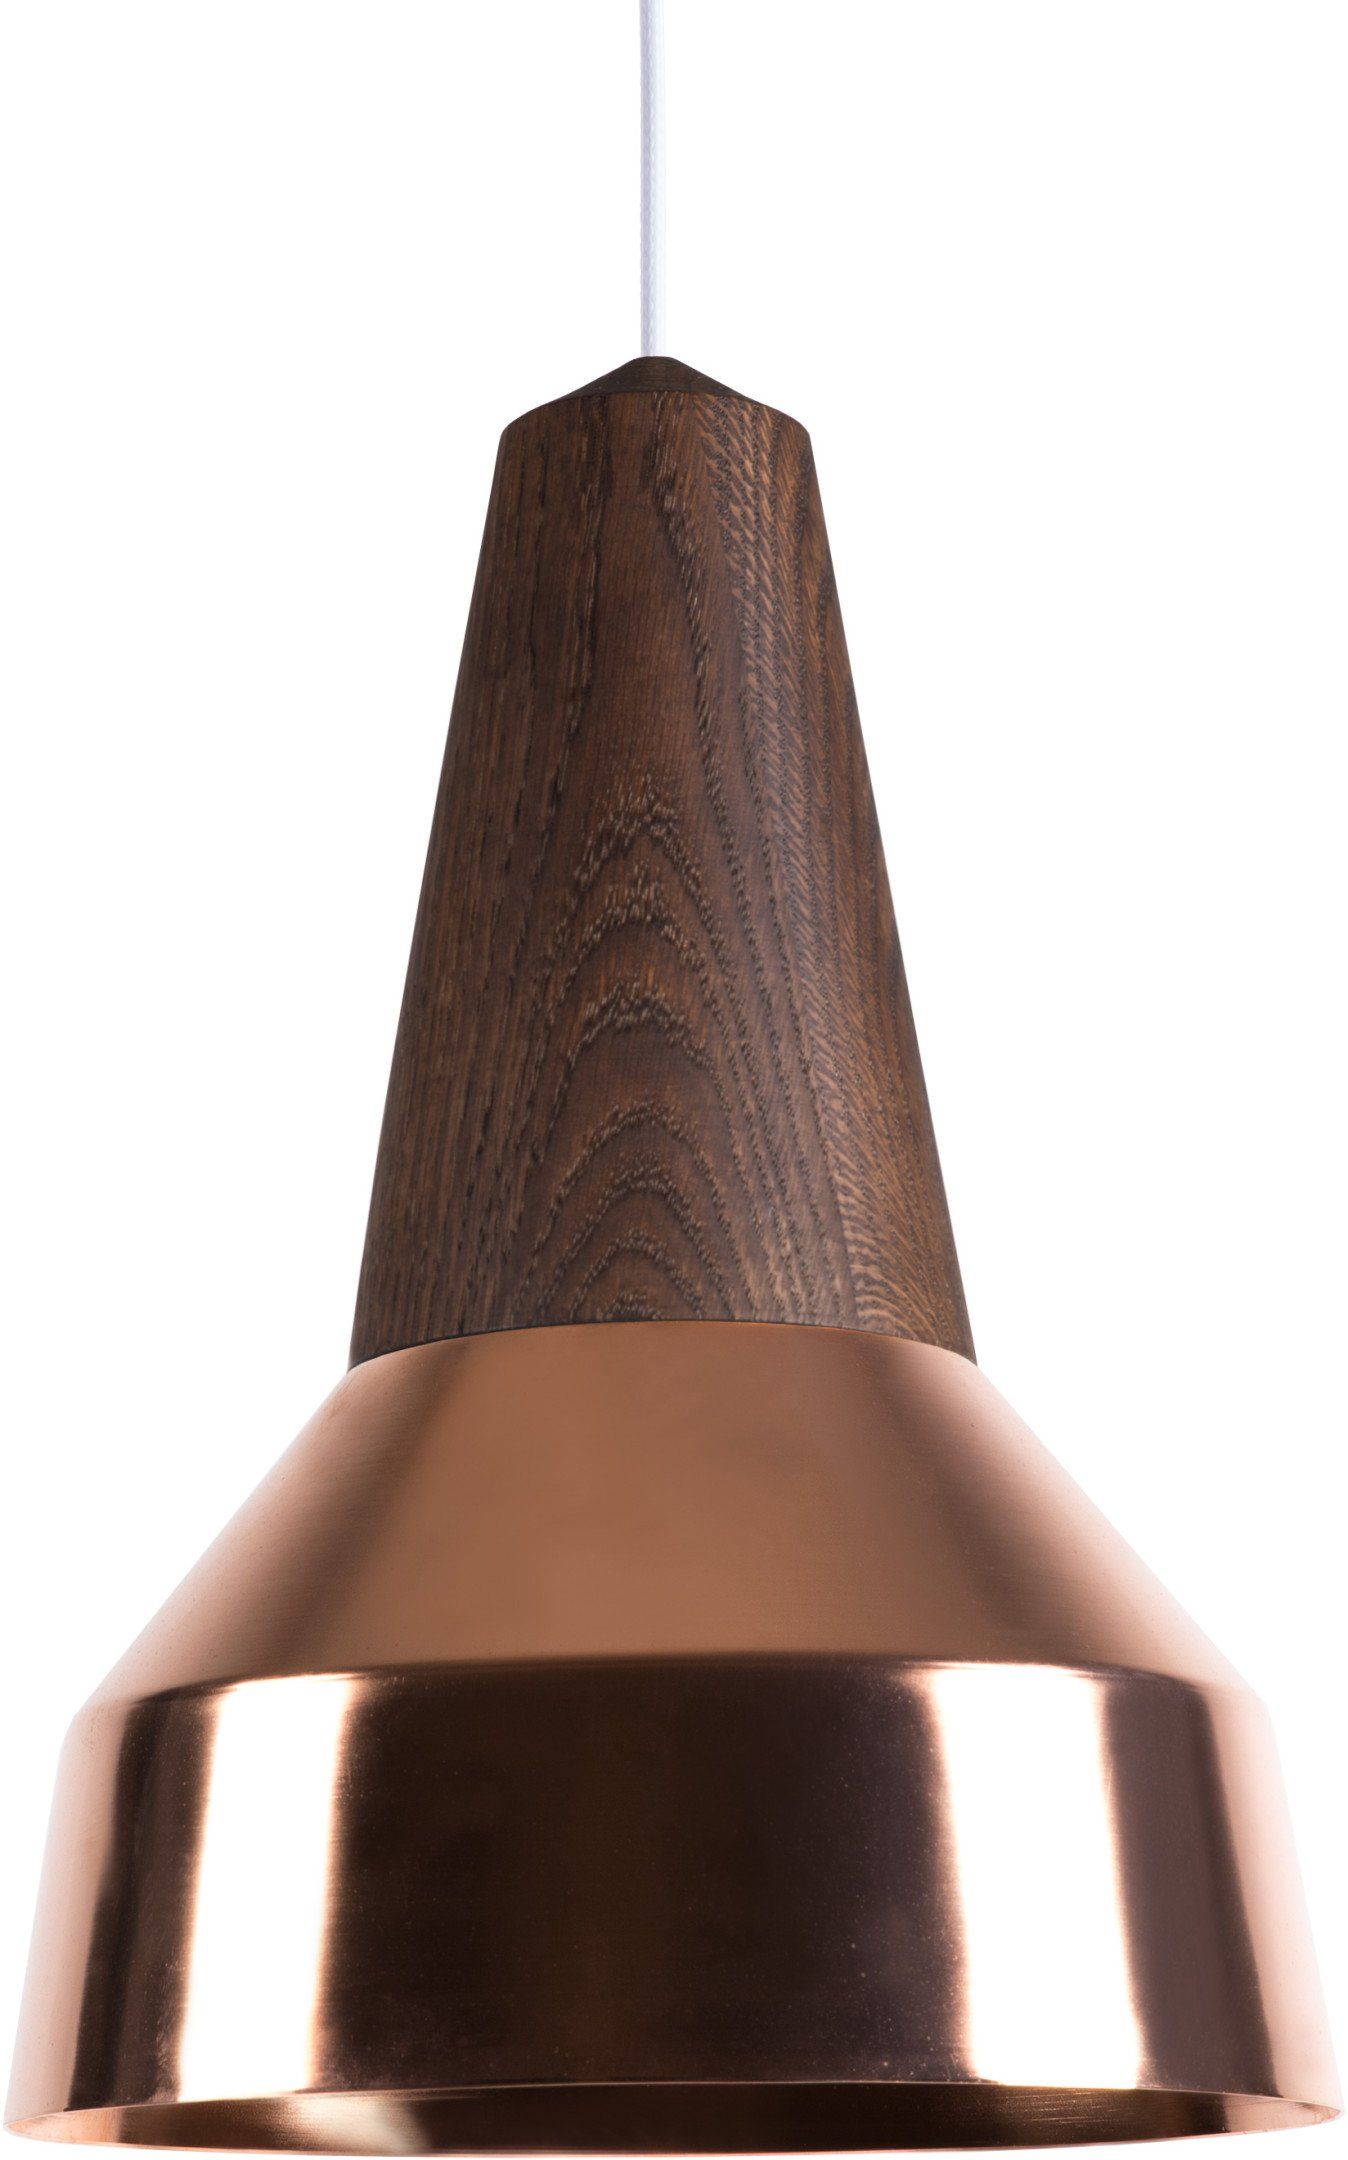 Eikon Ray Pendant Lamp Copper Smoked Oak by J. Jessen, N. Jessen for Schneid, Germany